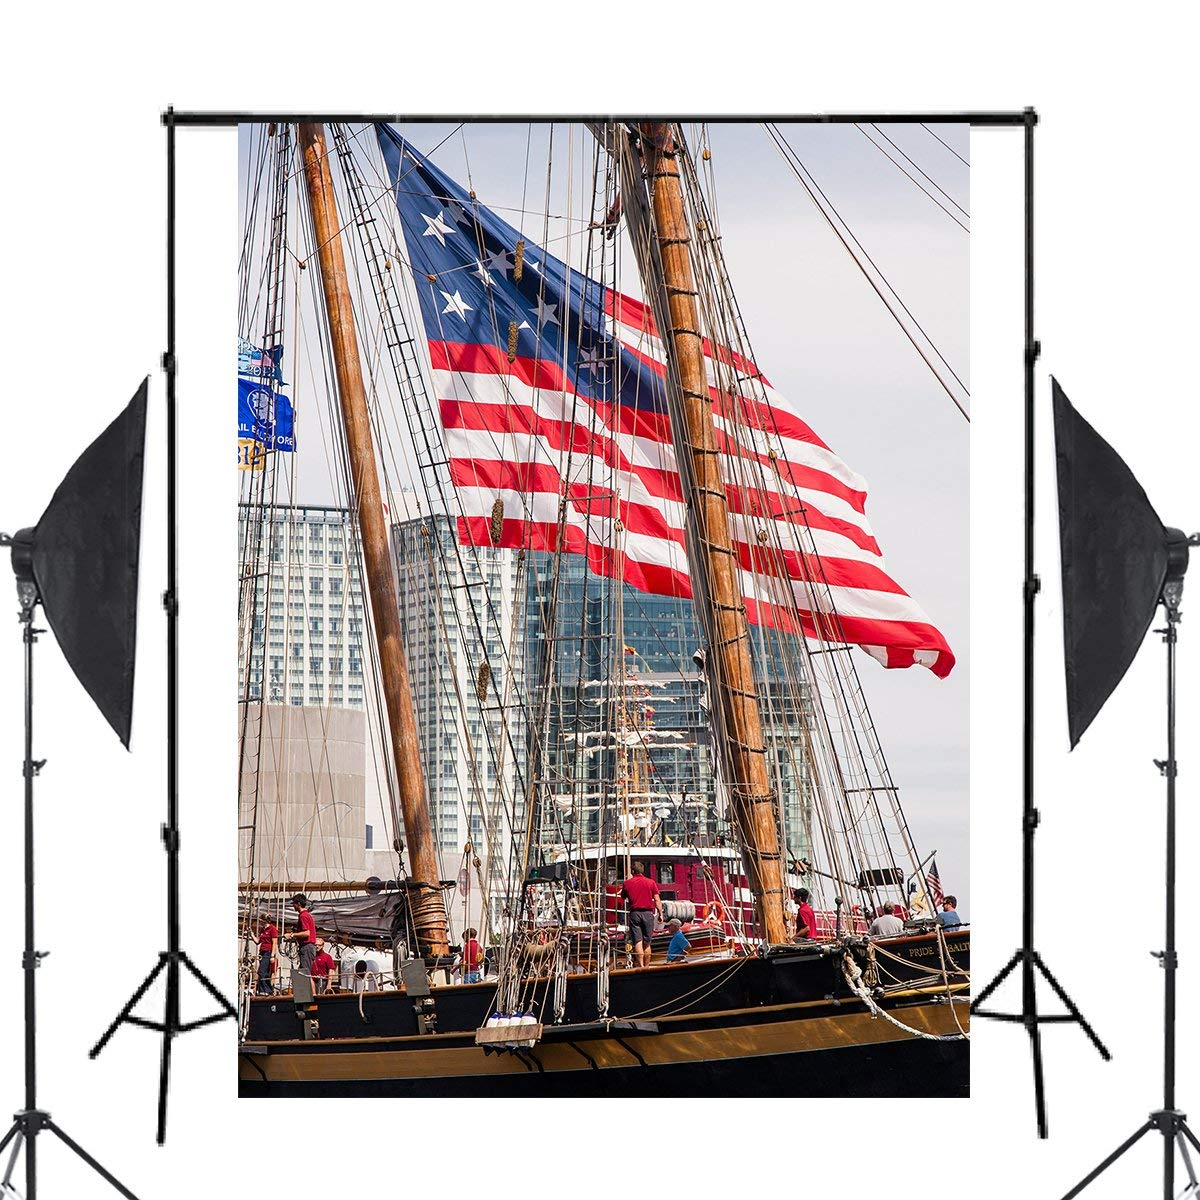 Image 2 - Tall Ships Photography Background Studio Props Wall River water Photography Backdrop 5x7ft-in Photo Studio Accessories from Consumer Electronics